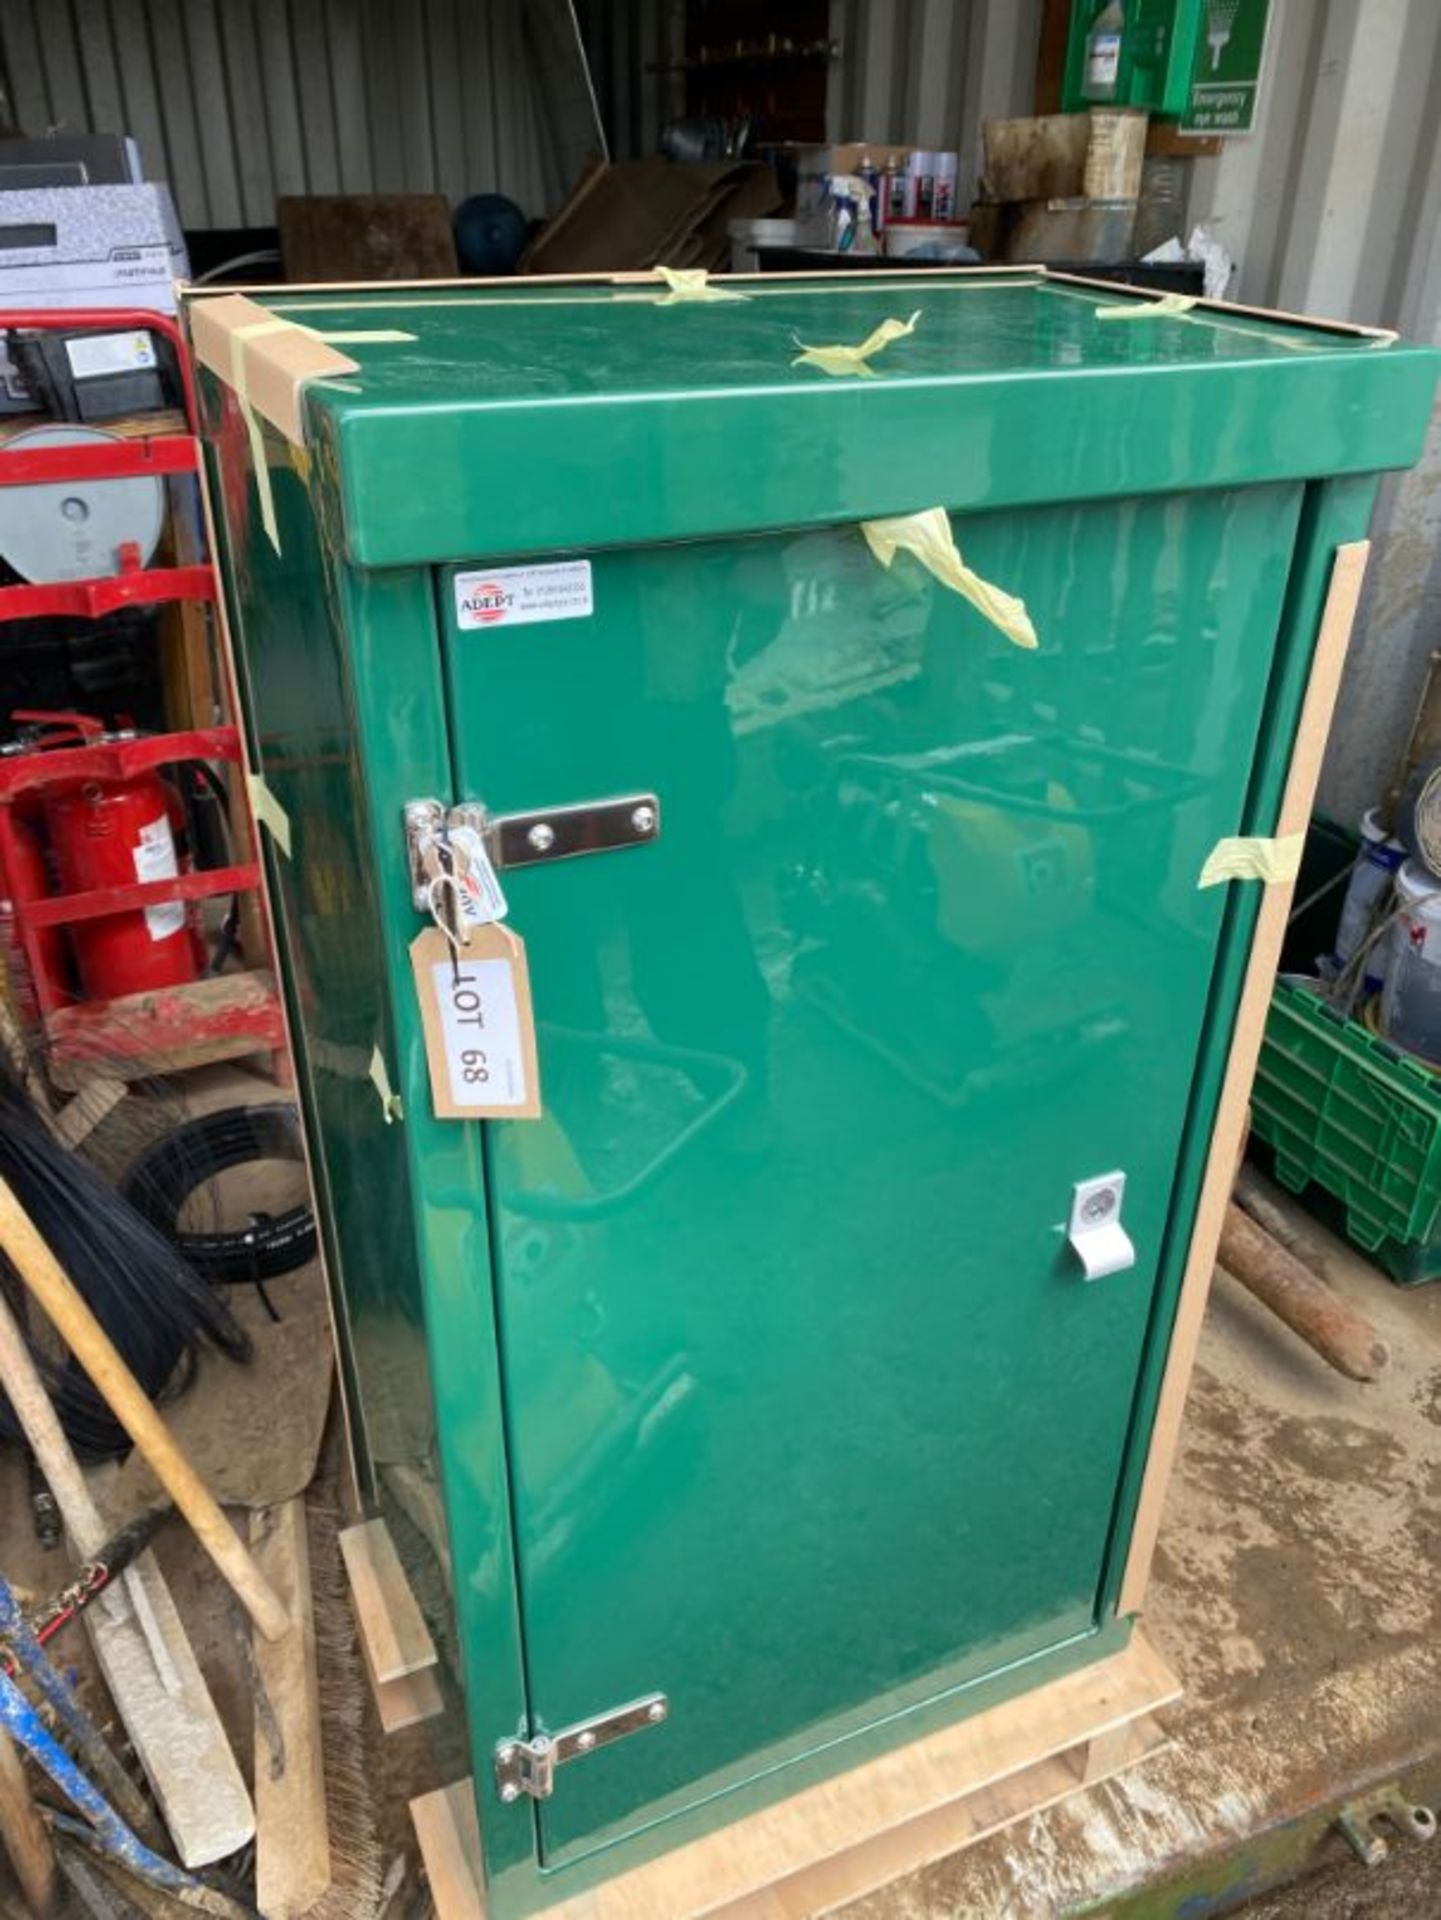 Lot 68 - Adept GRP lockable cabinet, 520 x 400 x 1200 mm (unused on delivery pallet)